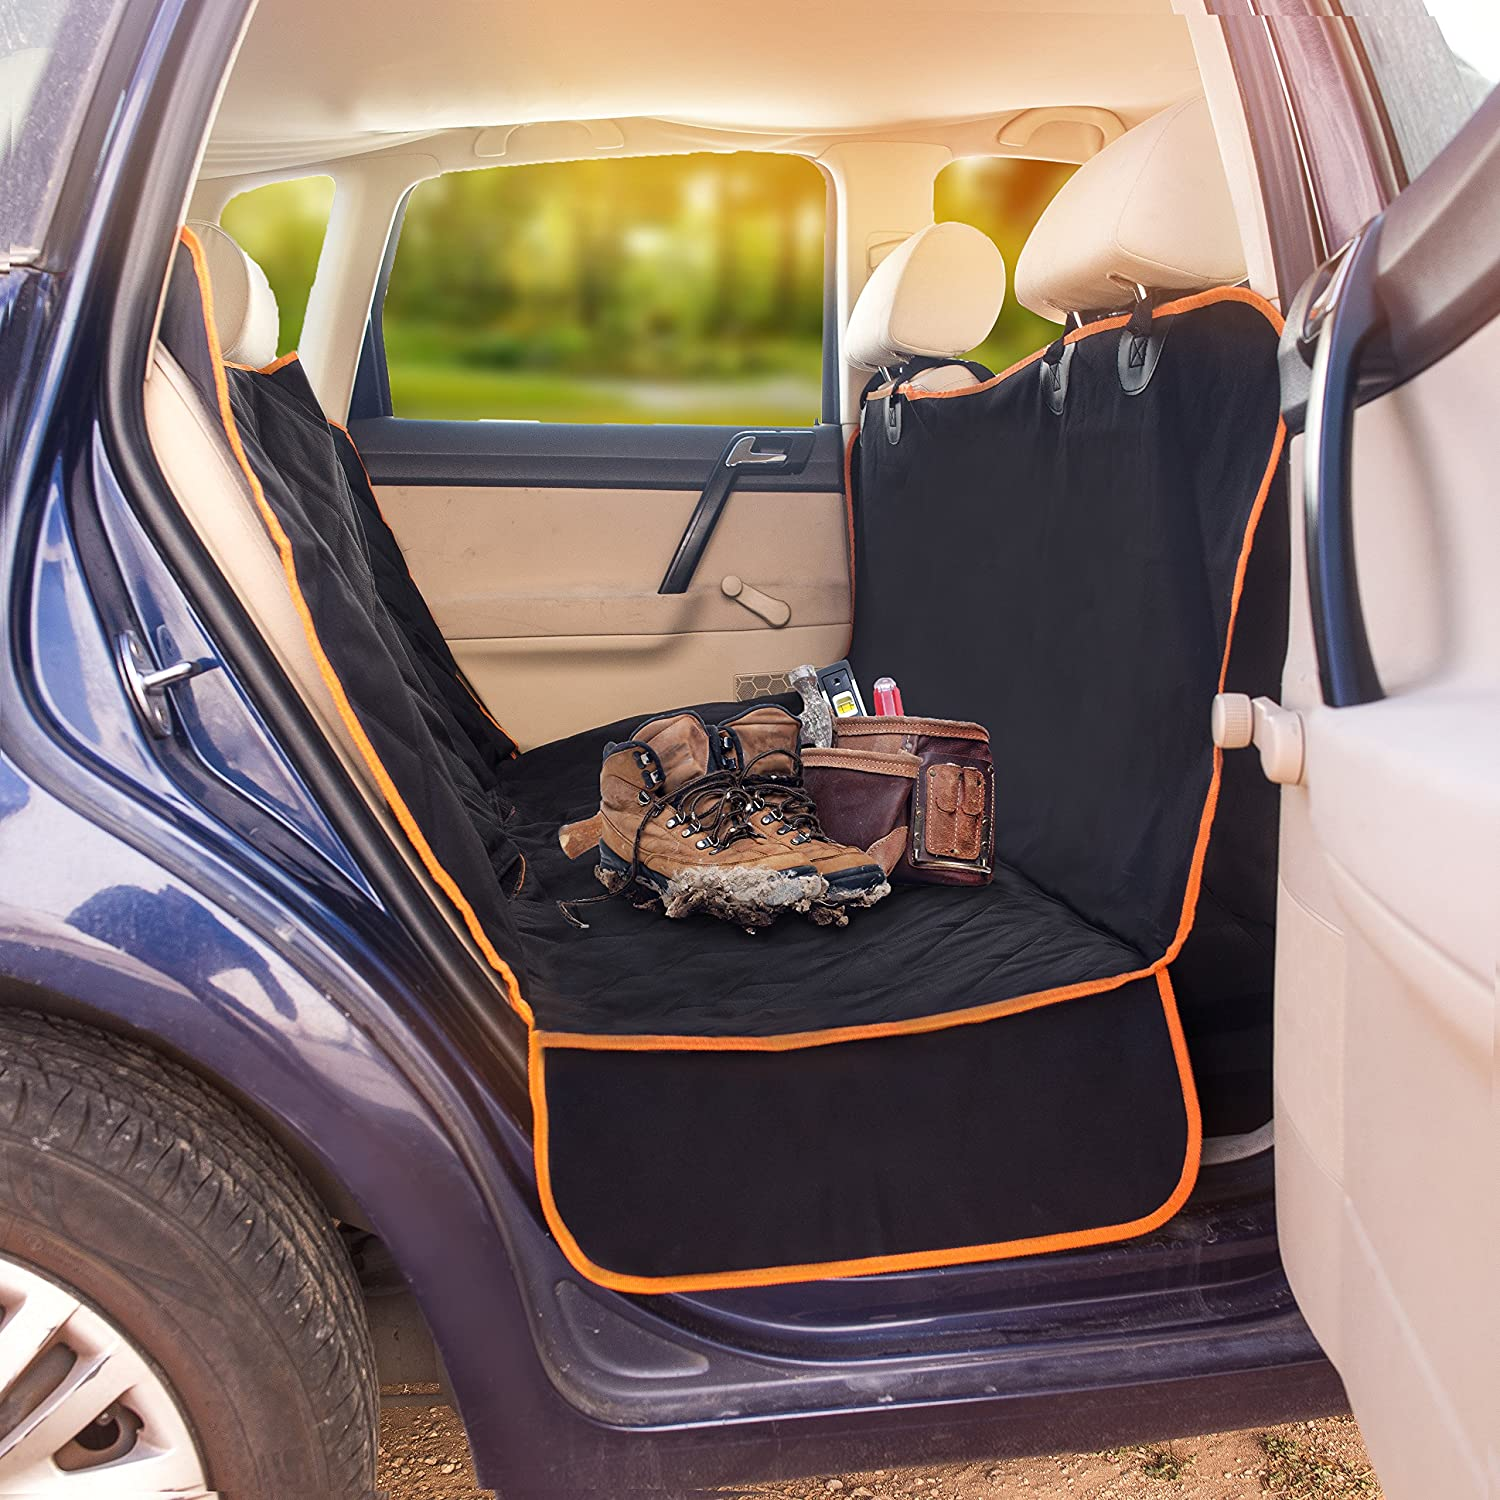 The Best Pet Car Seat Covers In 2020: Reviews & Buying Guide 3